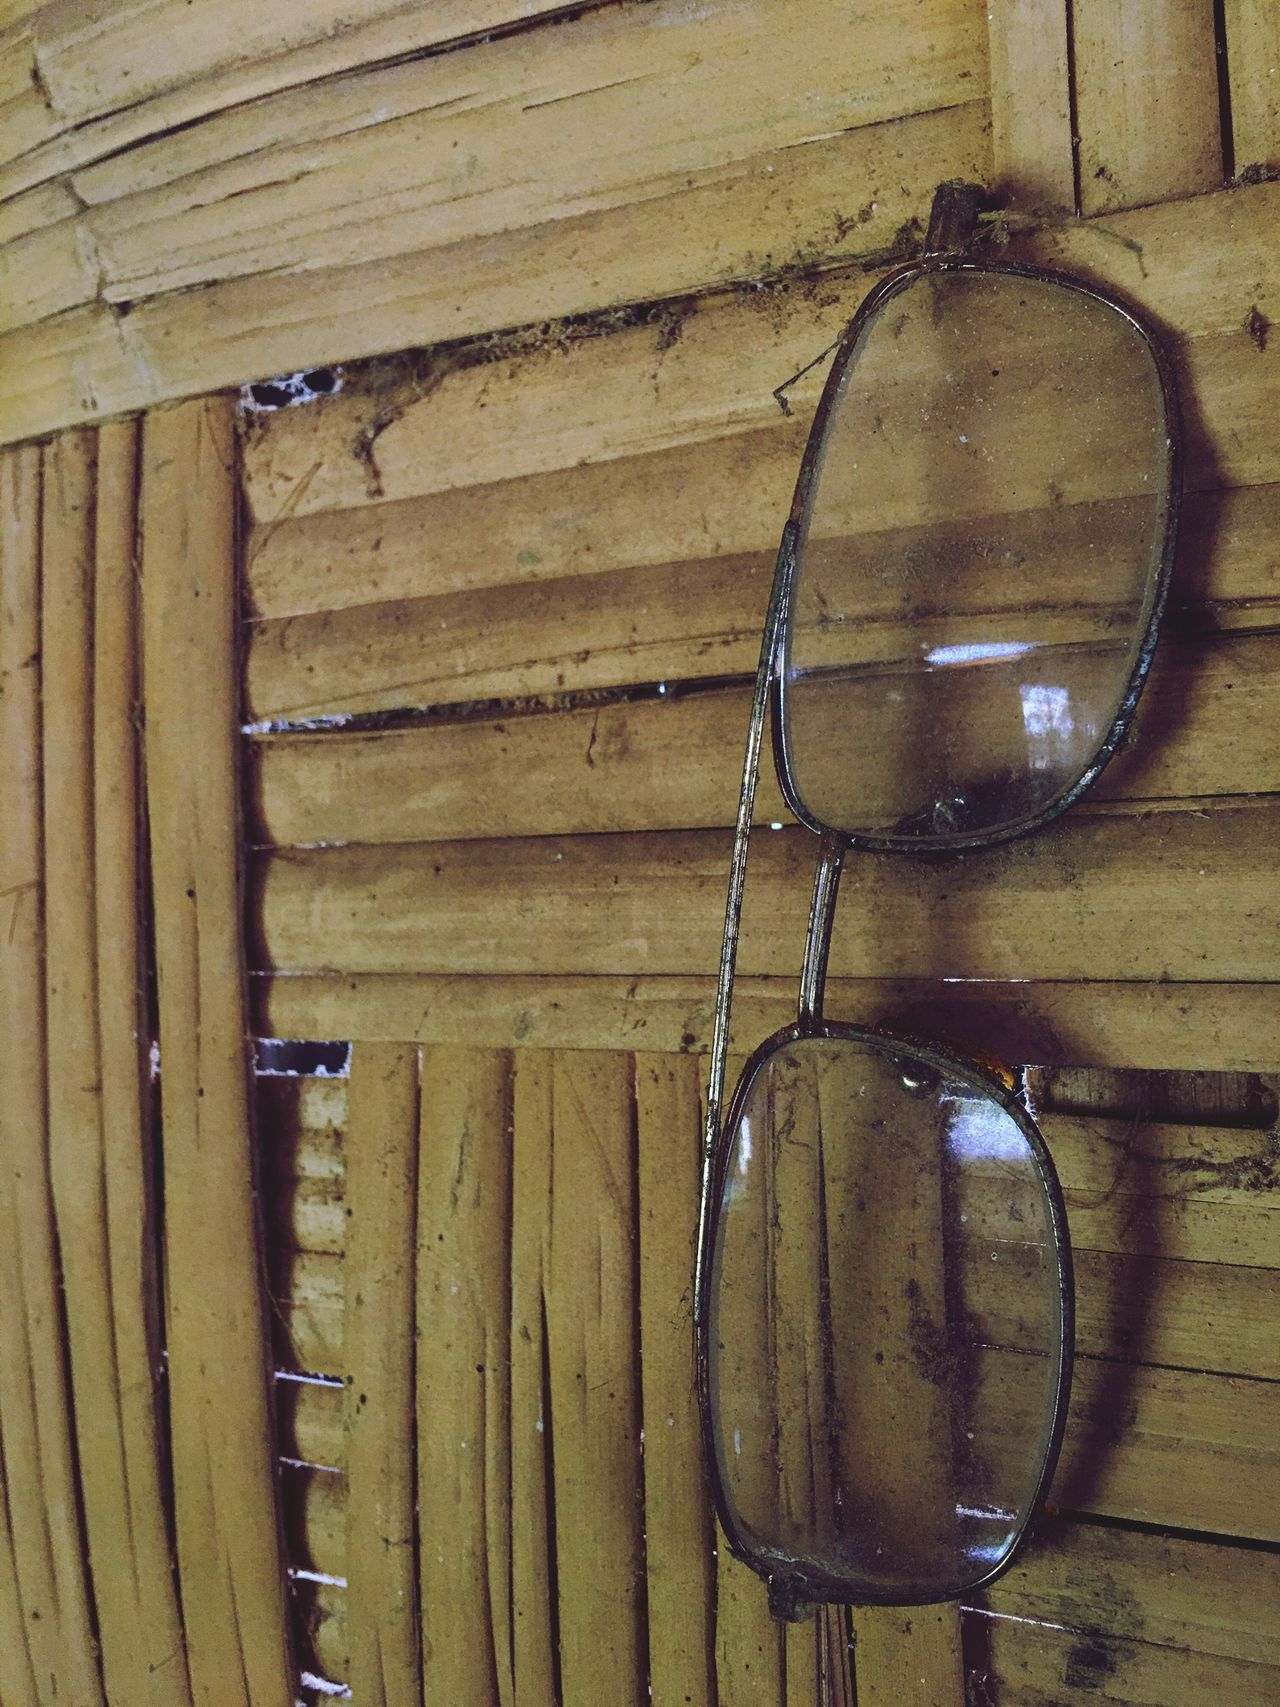 Wood - Material No People Hanging Indoors  Close-up Day Glass Spectacles Glasses